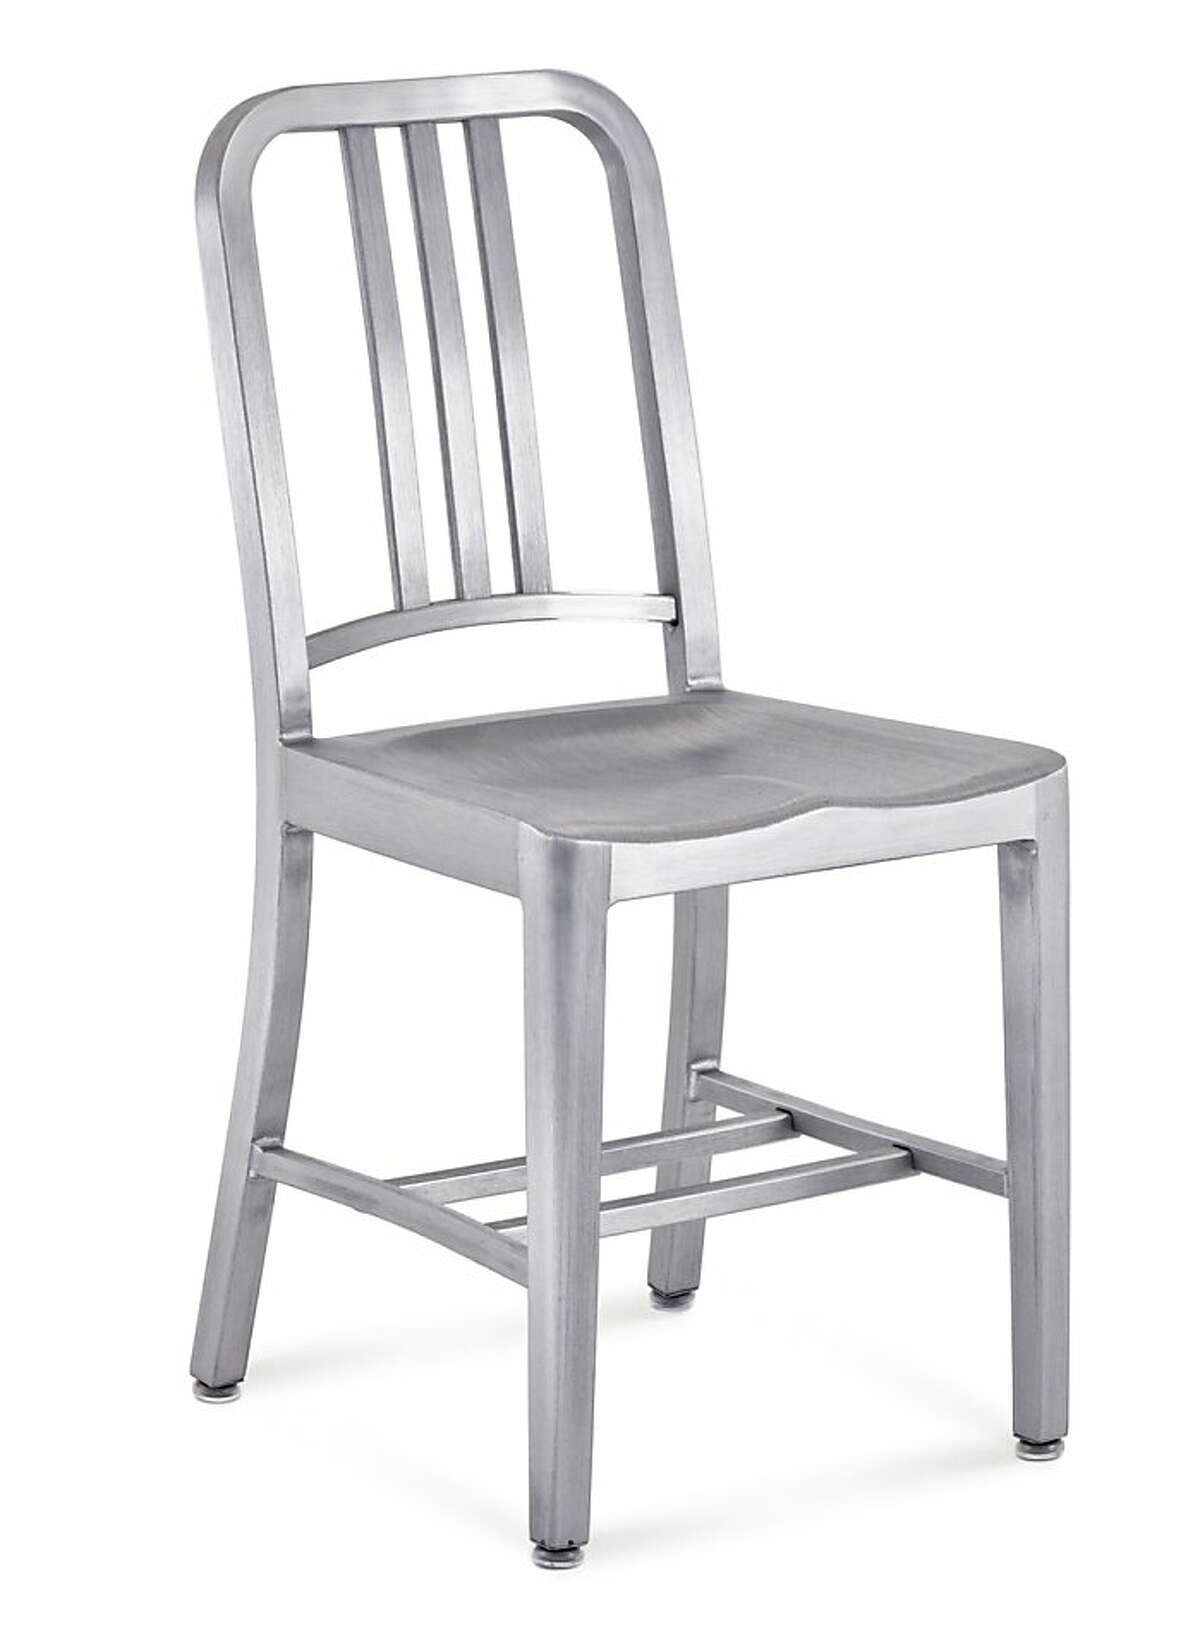 The Emeco Navy chair is built to last 150 years.